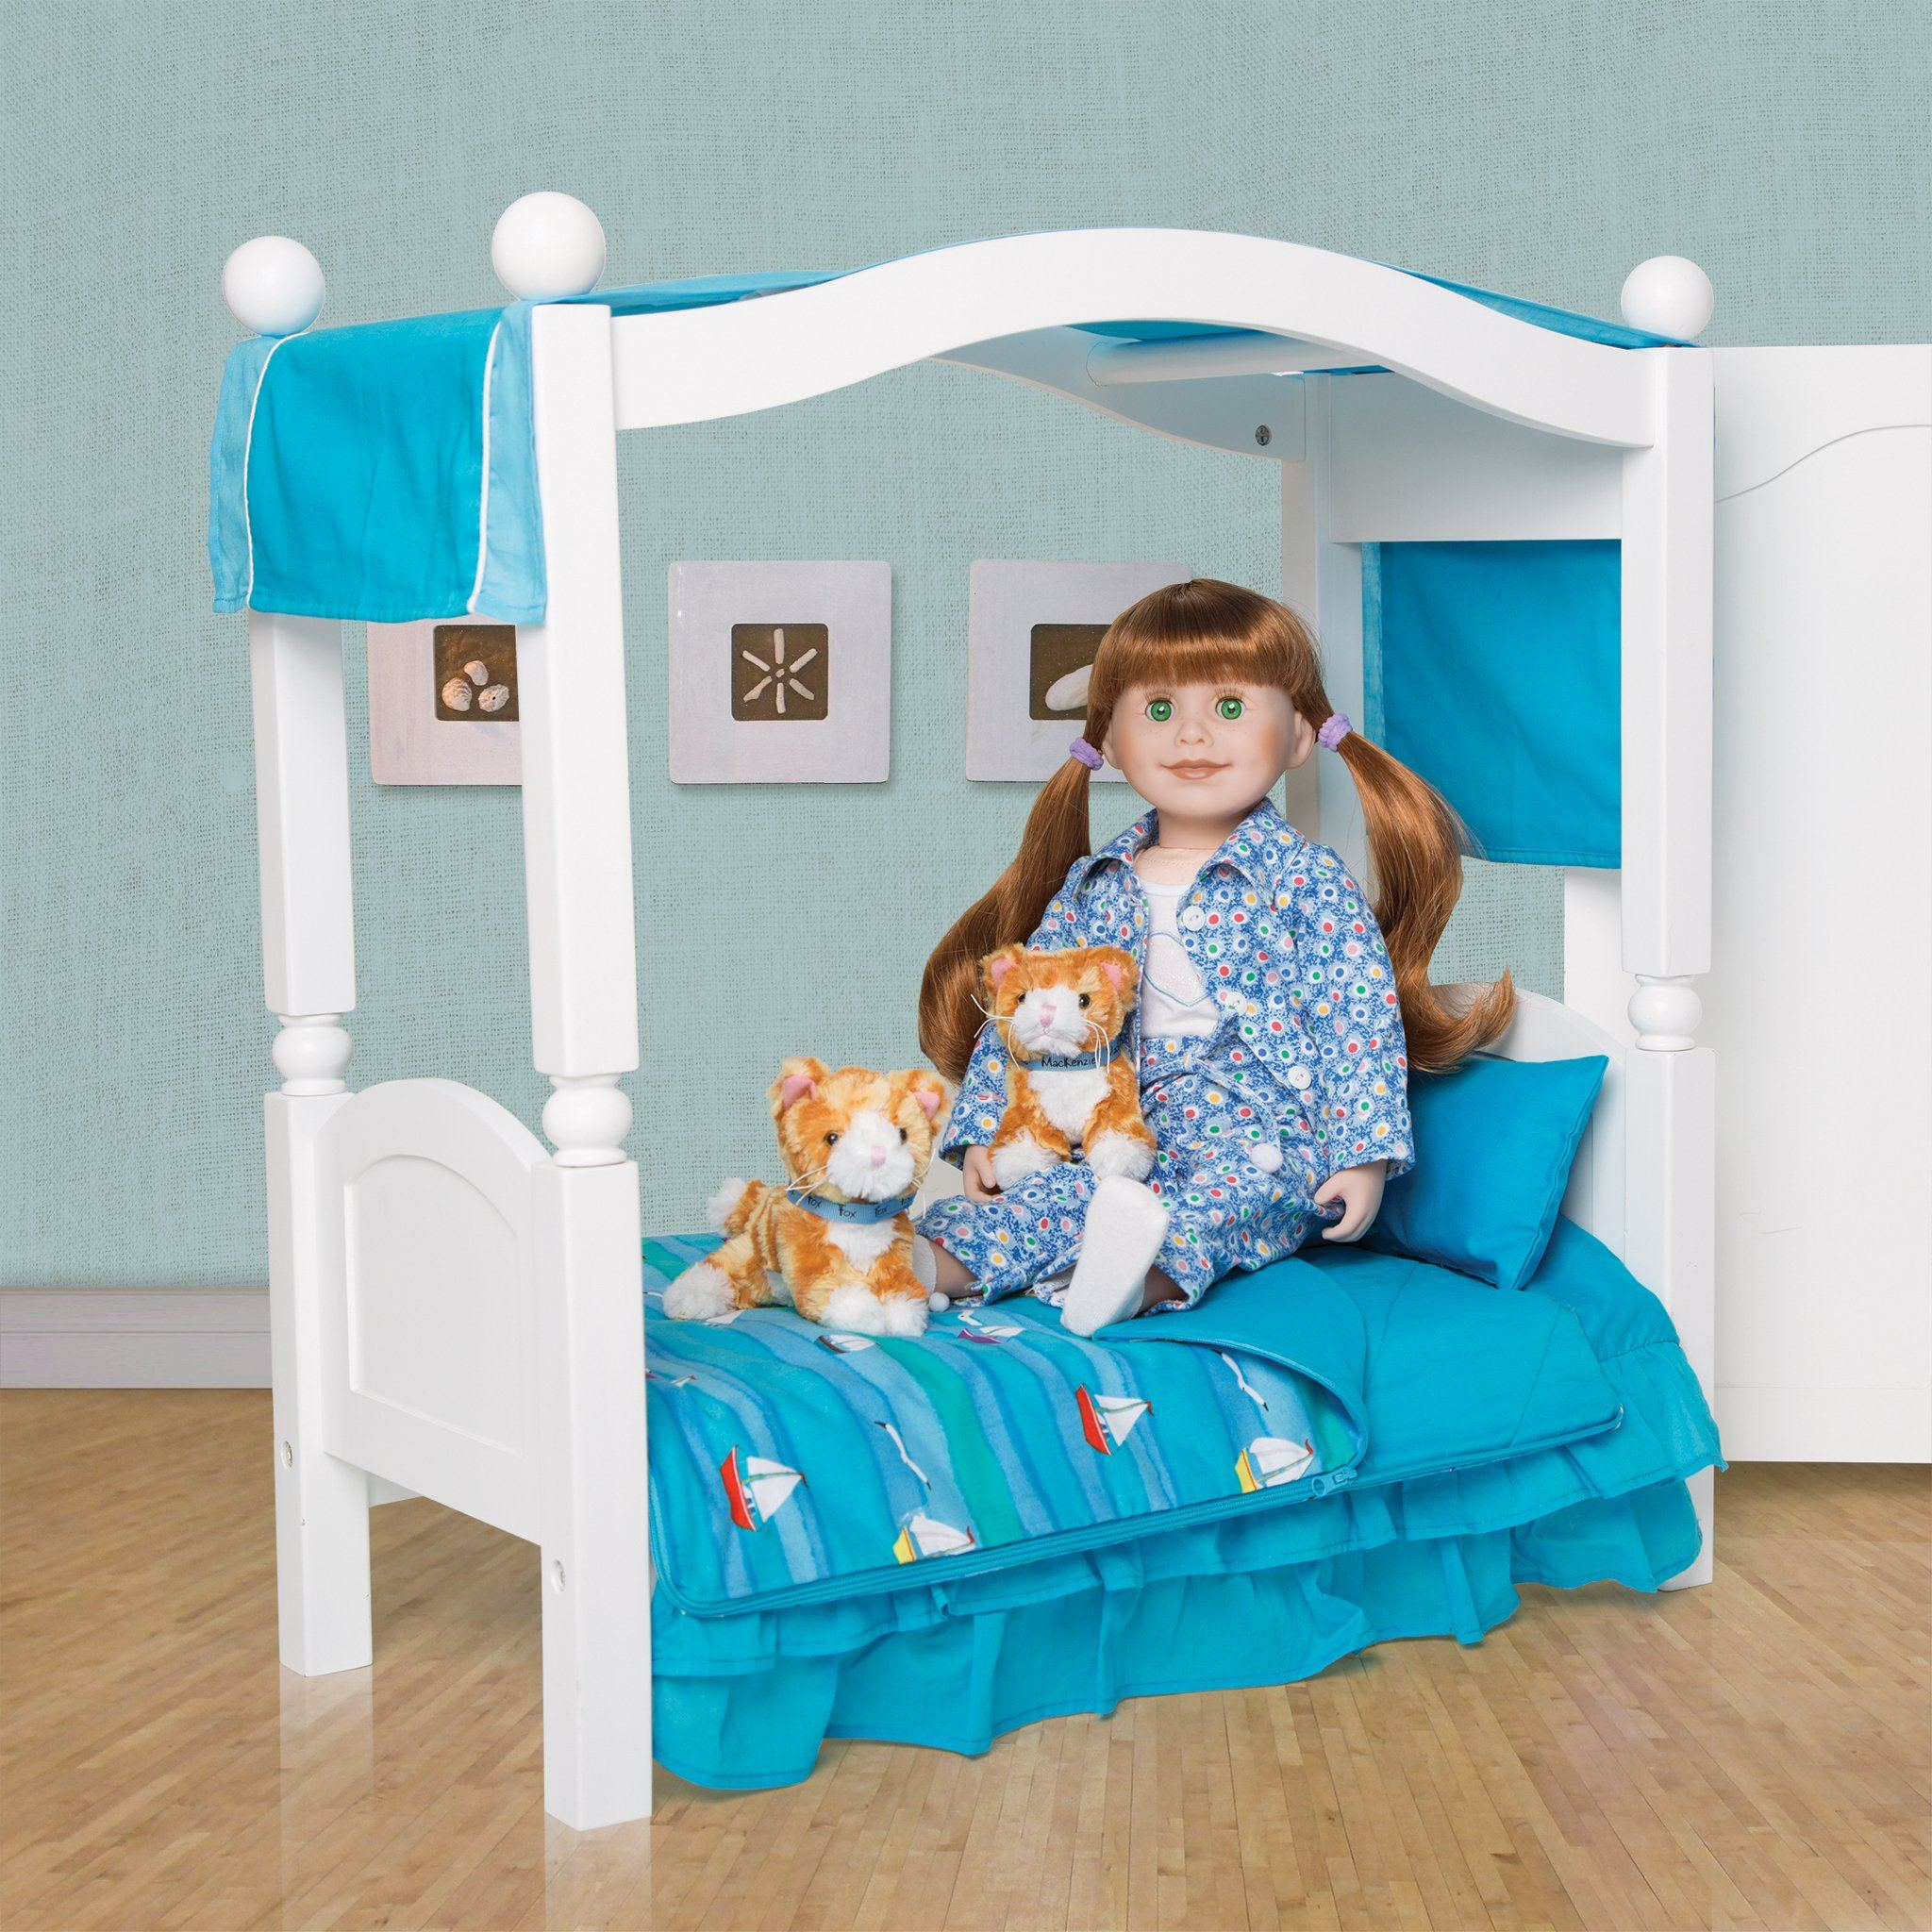 Ocean Waves Canopy Cover 2-tone blue fits KM101 Canopy Frame. Shown on KM1 doll bed with KM101 canopy frame.